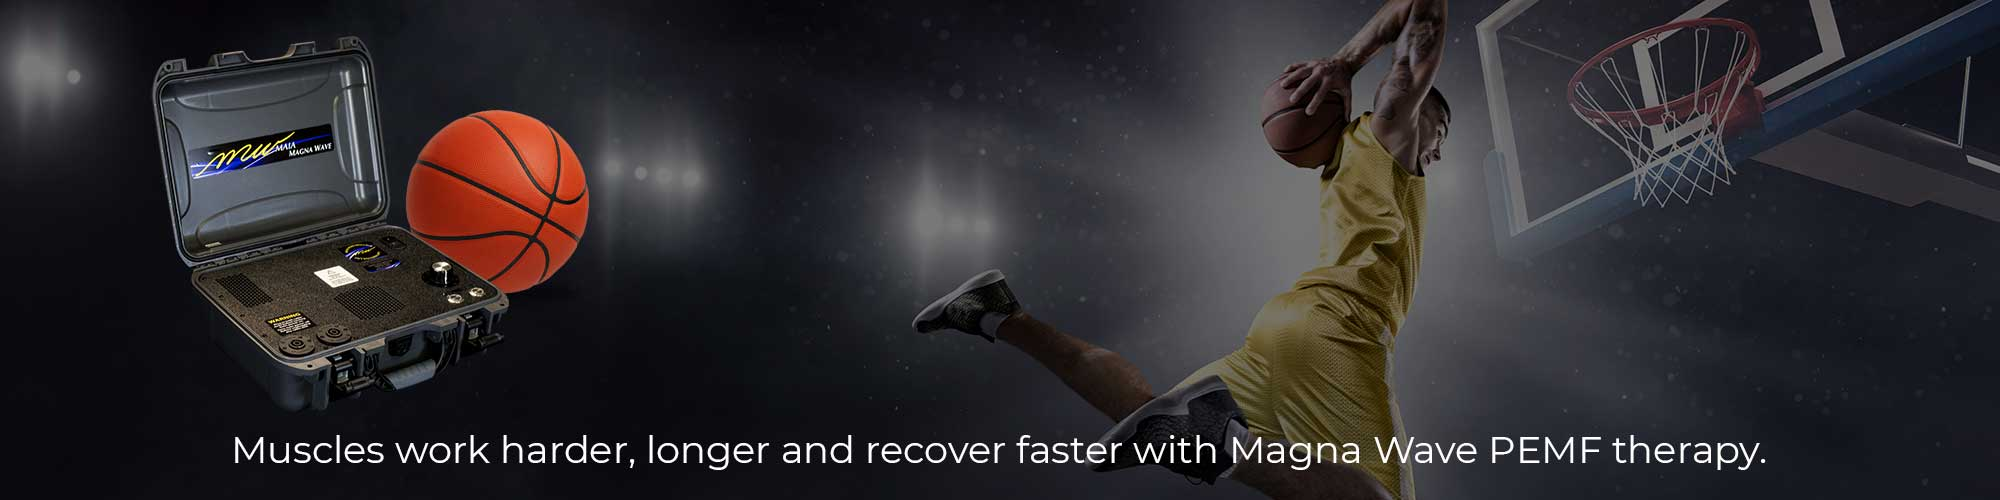 Muscles work harder, longer and recover faster with Magna Wave PEMF therapy.